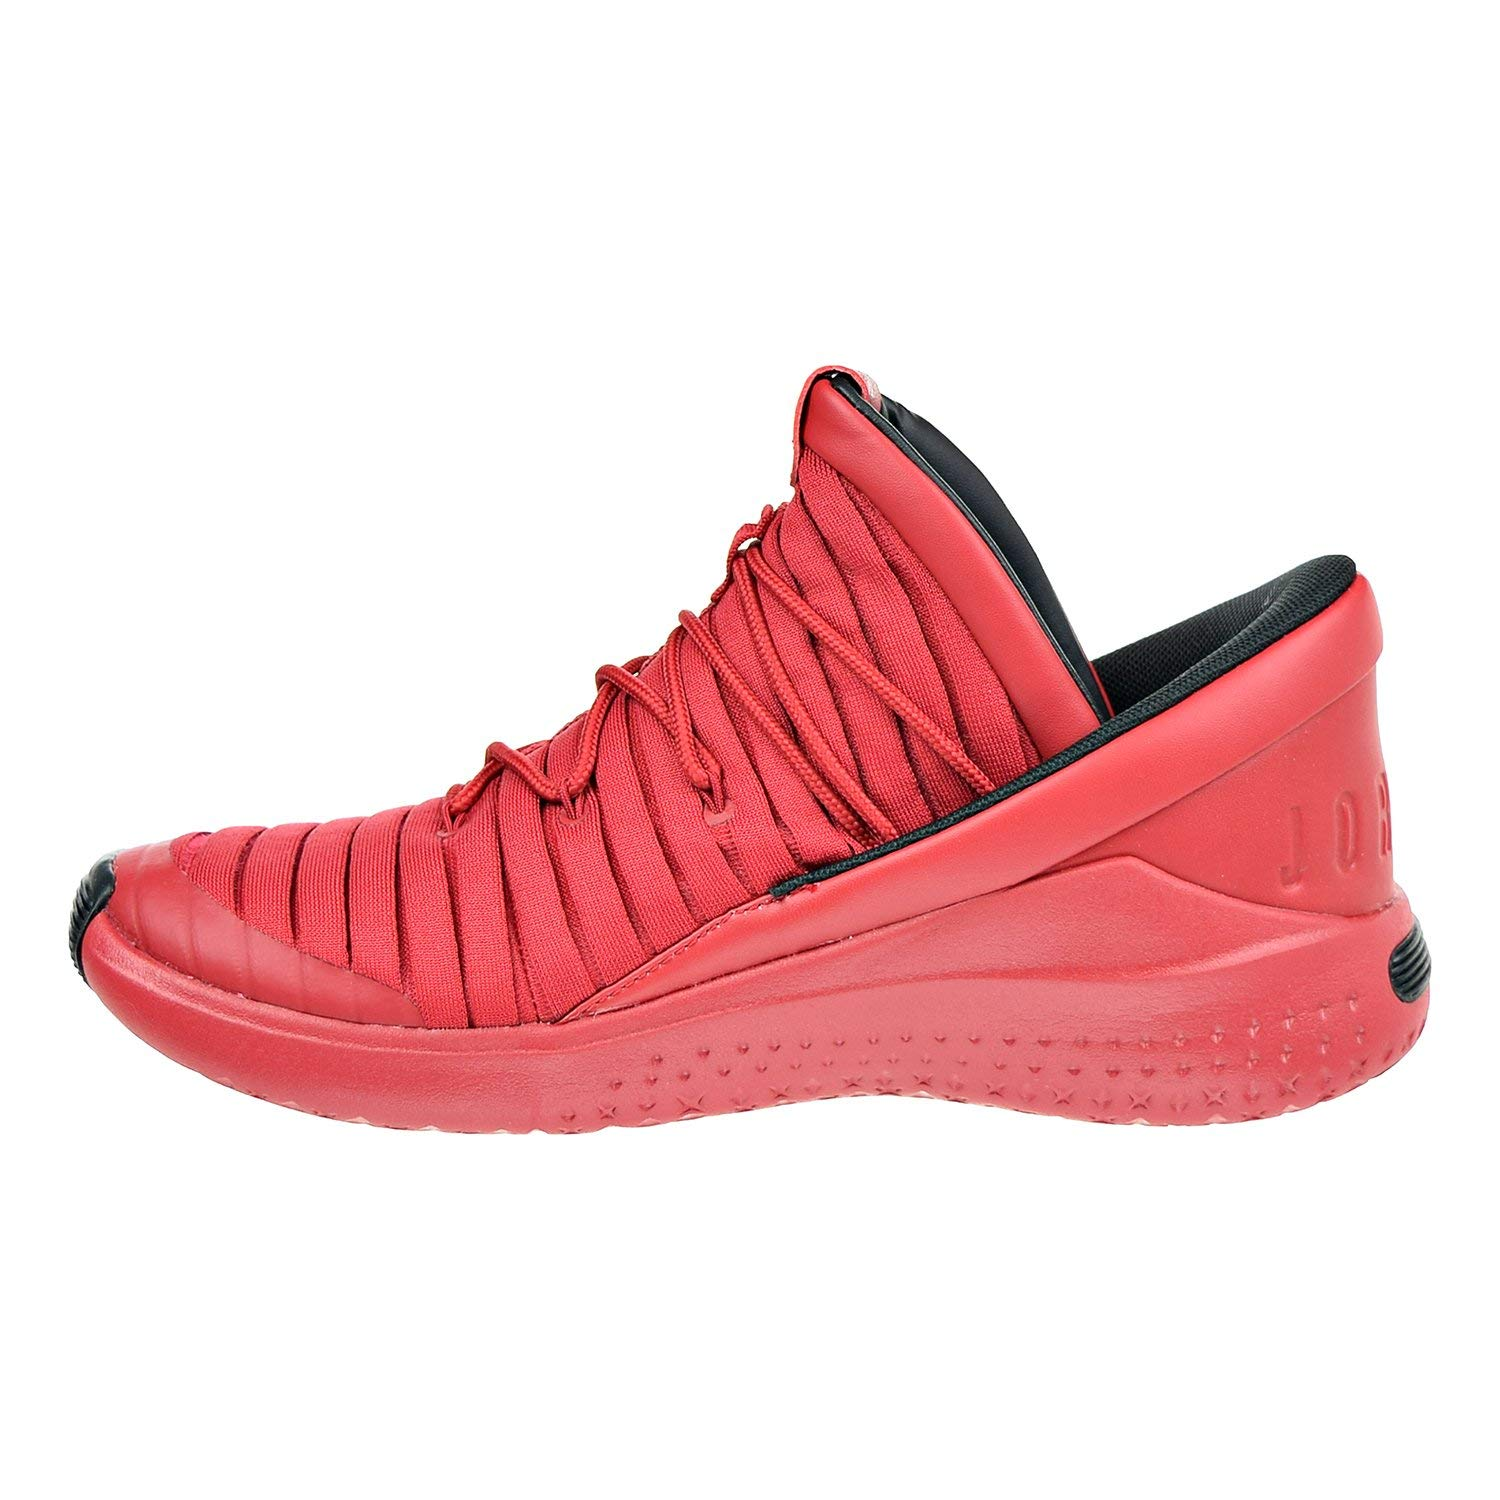 wholesale dealer 4bd8b c1e71 Amazon.com   Jordan Flight Luxe Men s Running Shoes Gym Red Black-Gym Red  919715-601 (10.5 D(M) US)   Basketball